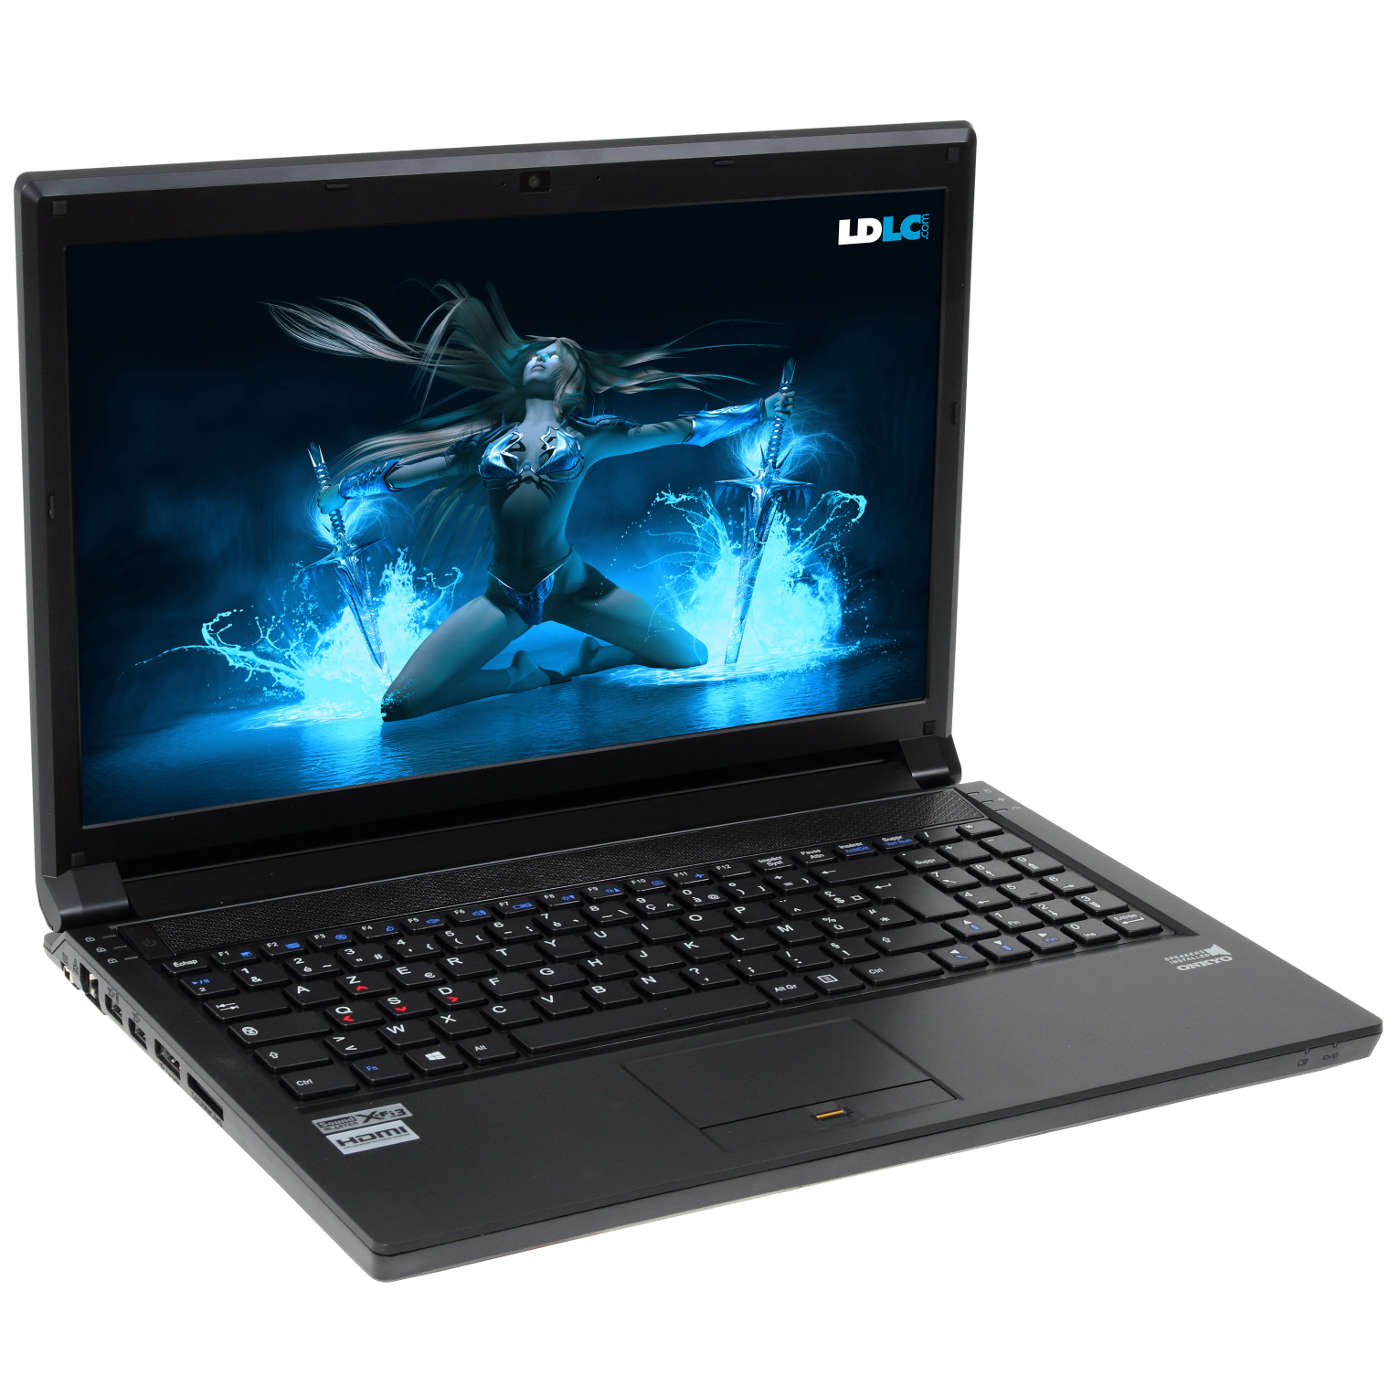 "PC portable LDLC Bellone GB3-I5-8-H10S-H7 Intel Core i5-4210M 8 Go SSHD 1 To 15.6"" LED NVIDIA GeForce GTX 860M Graveur DVD Wi-Fi N/Bluetooth Webcam Windows 7 Premium 64 bits"